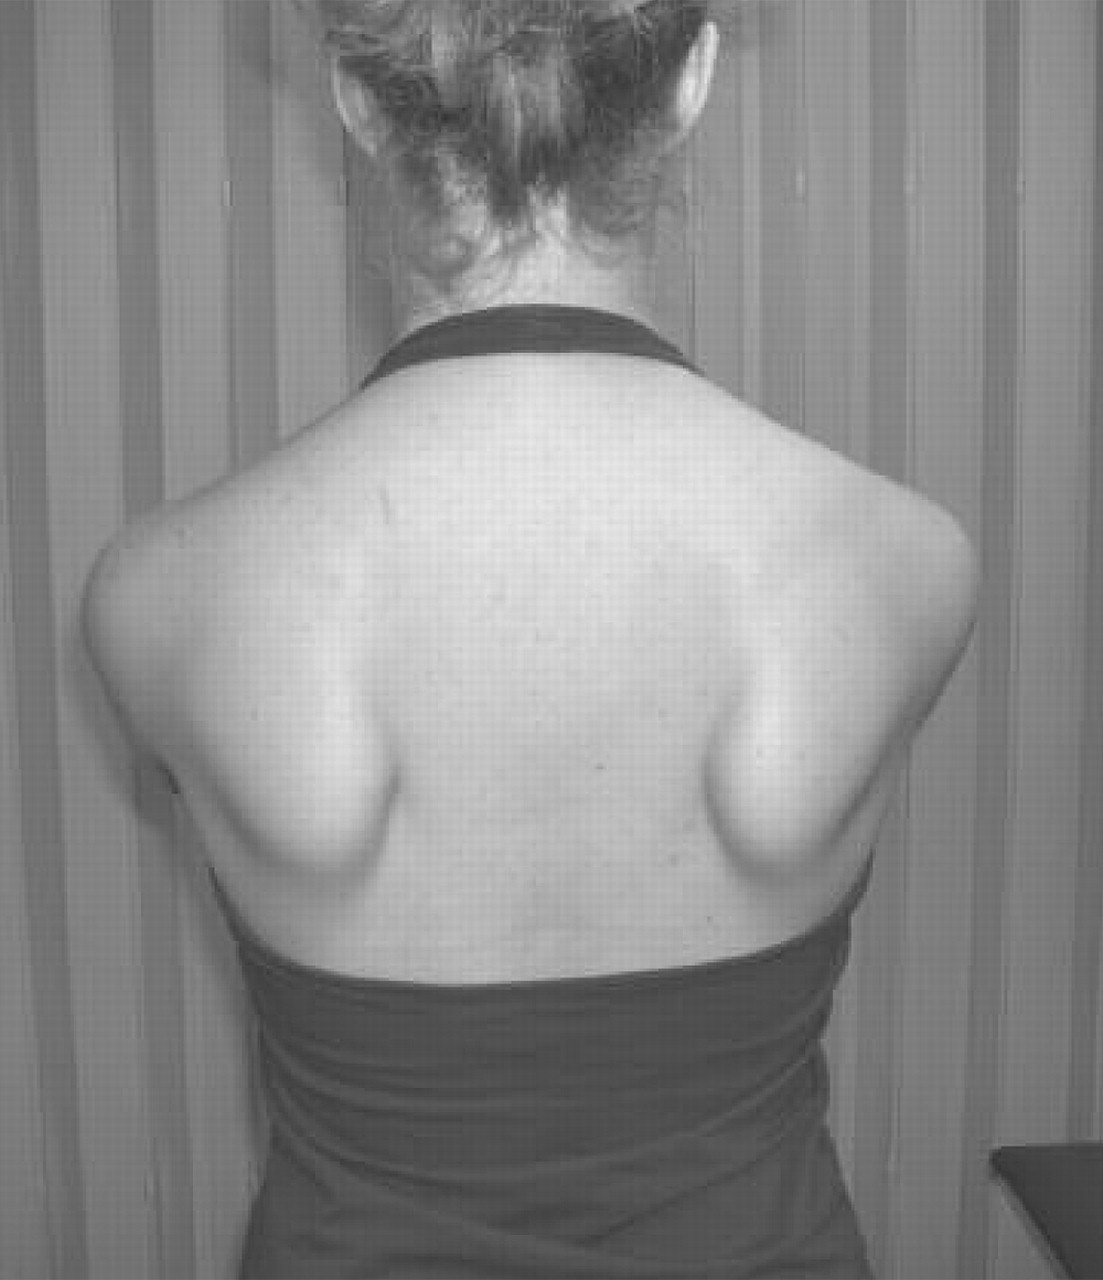 http://adriancrowe.files.wordpress.com/2011/10/winging-scapula1.jpg